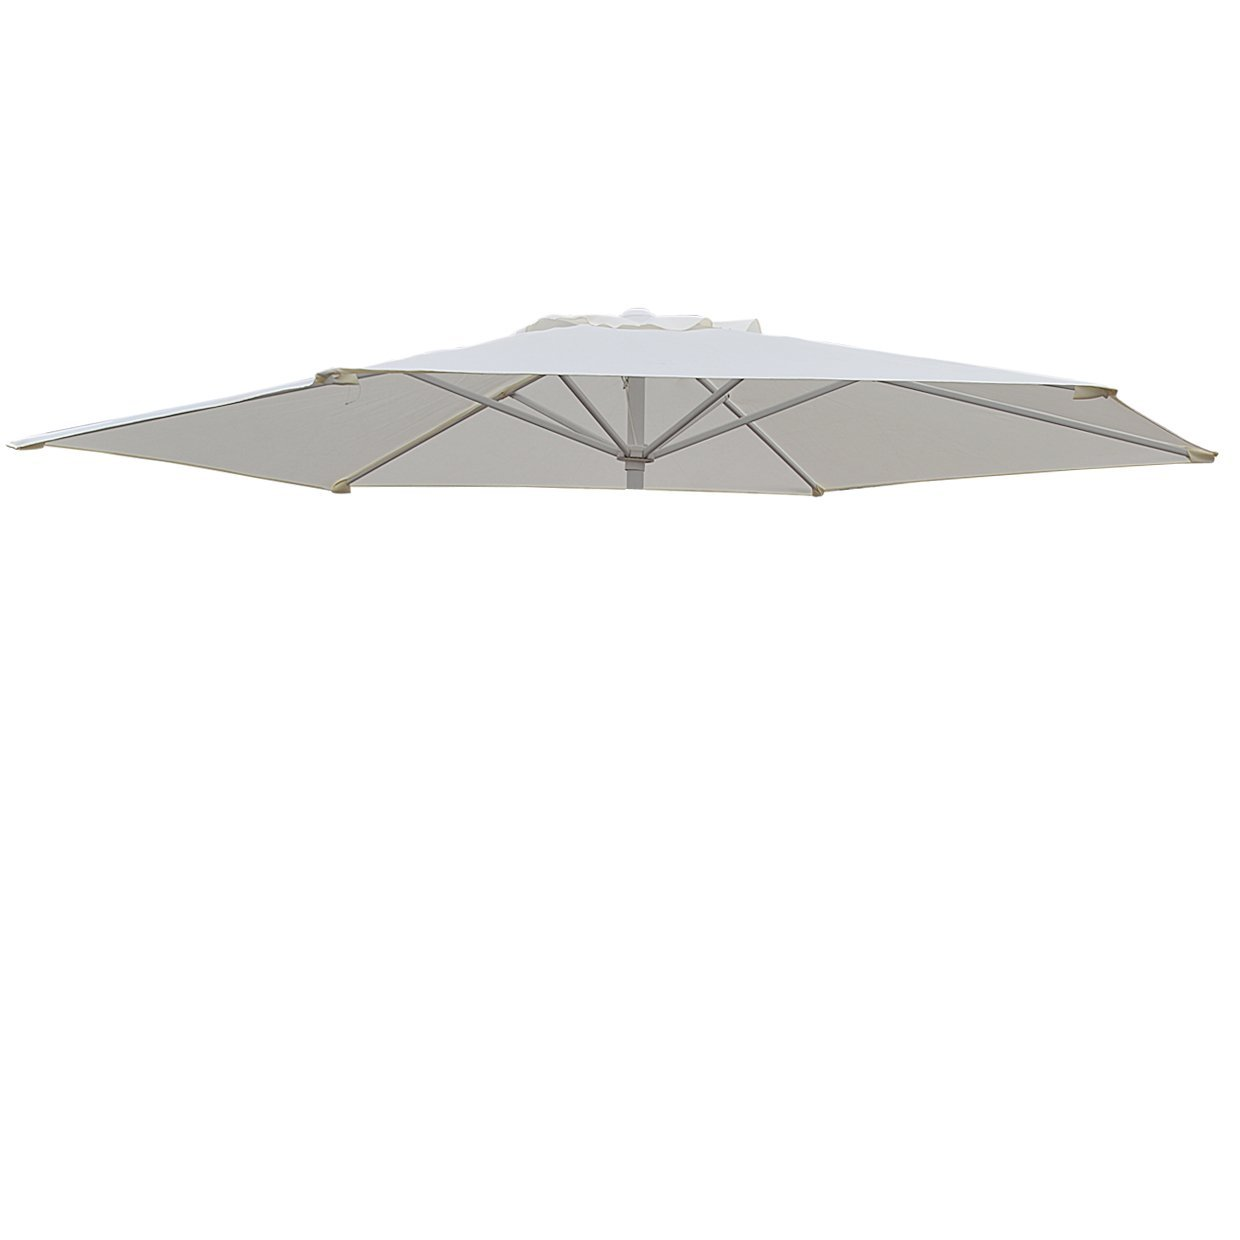 Replacement Patio Umbrella Canopy Cover For 9ft 6 Ribs Umbrella Taupe  (CANOPY ONLY)